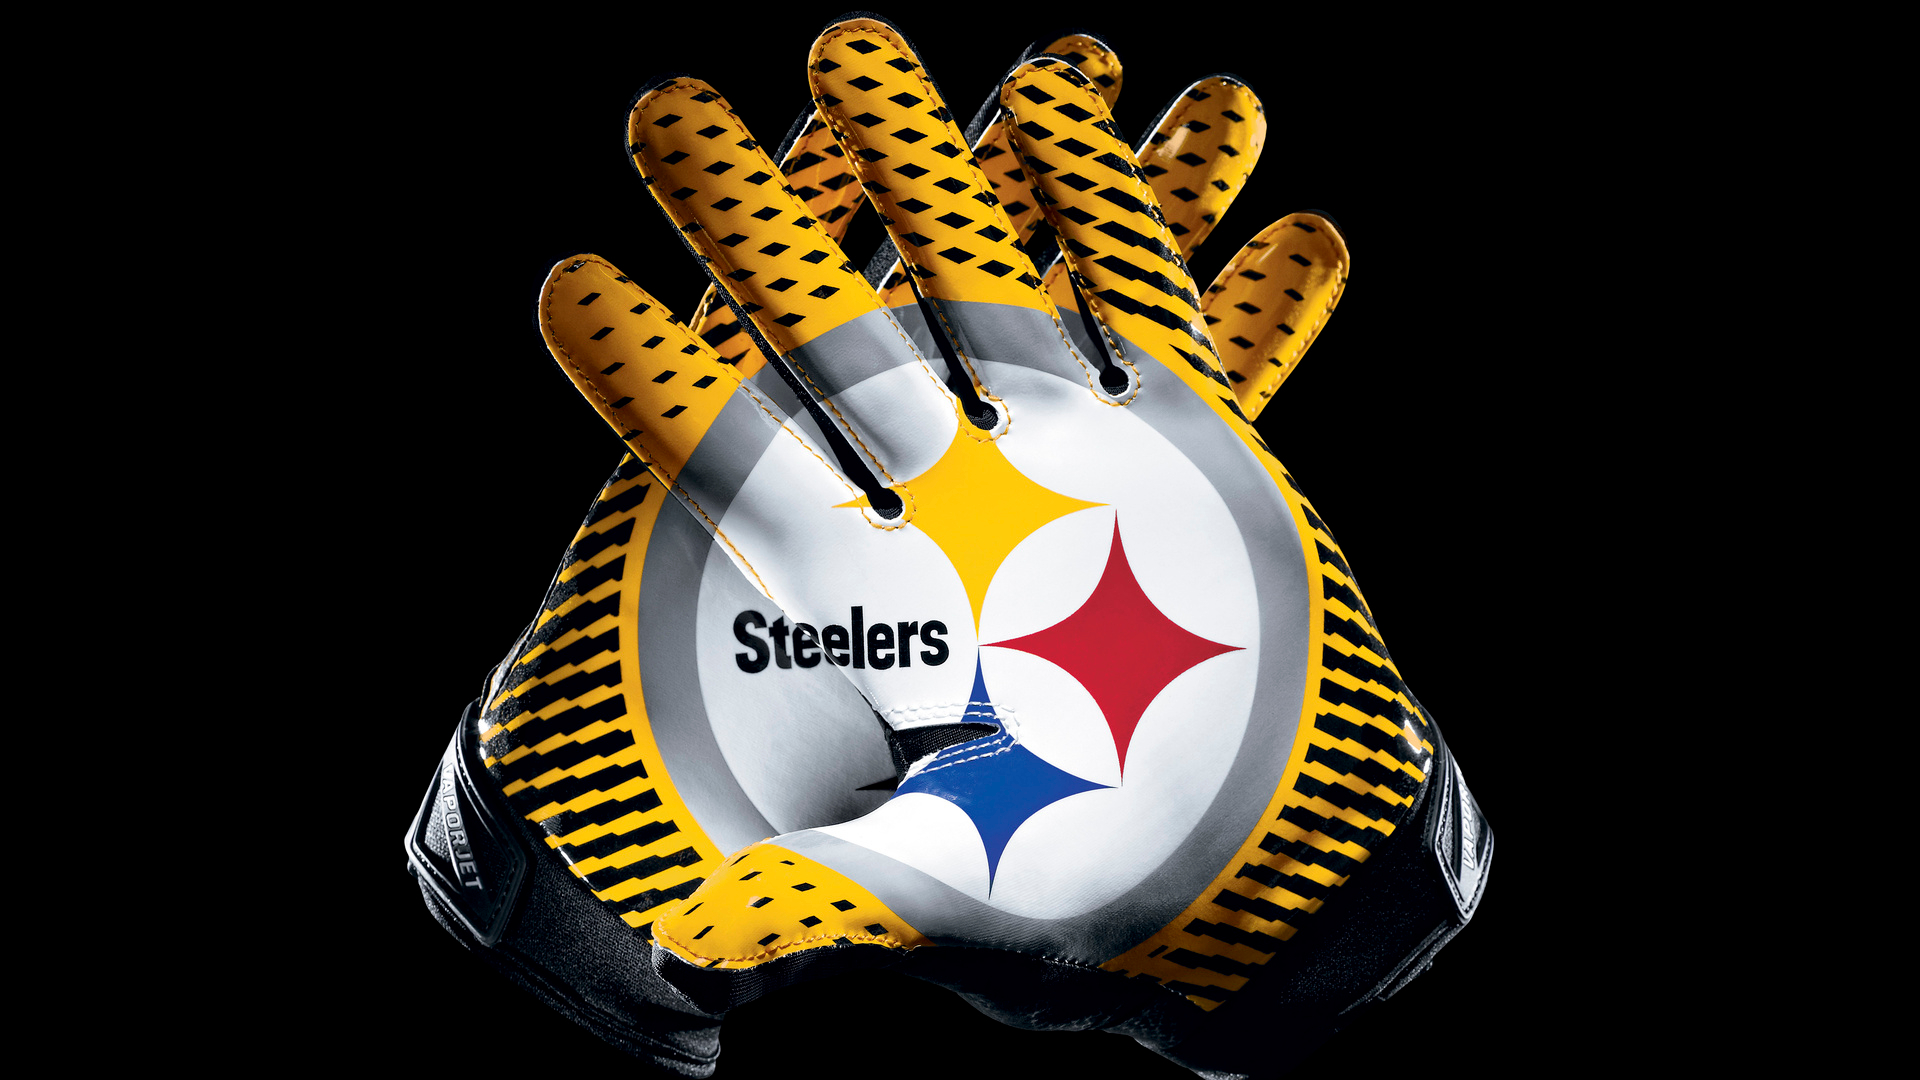 Wallpapers Steelers 44 Wallpapers – Adorable Wallpapers